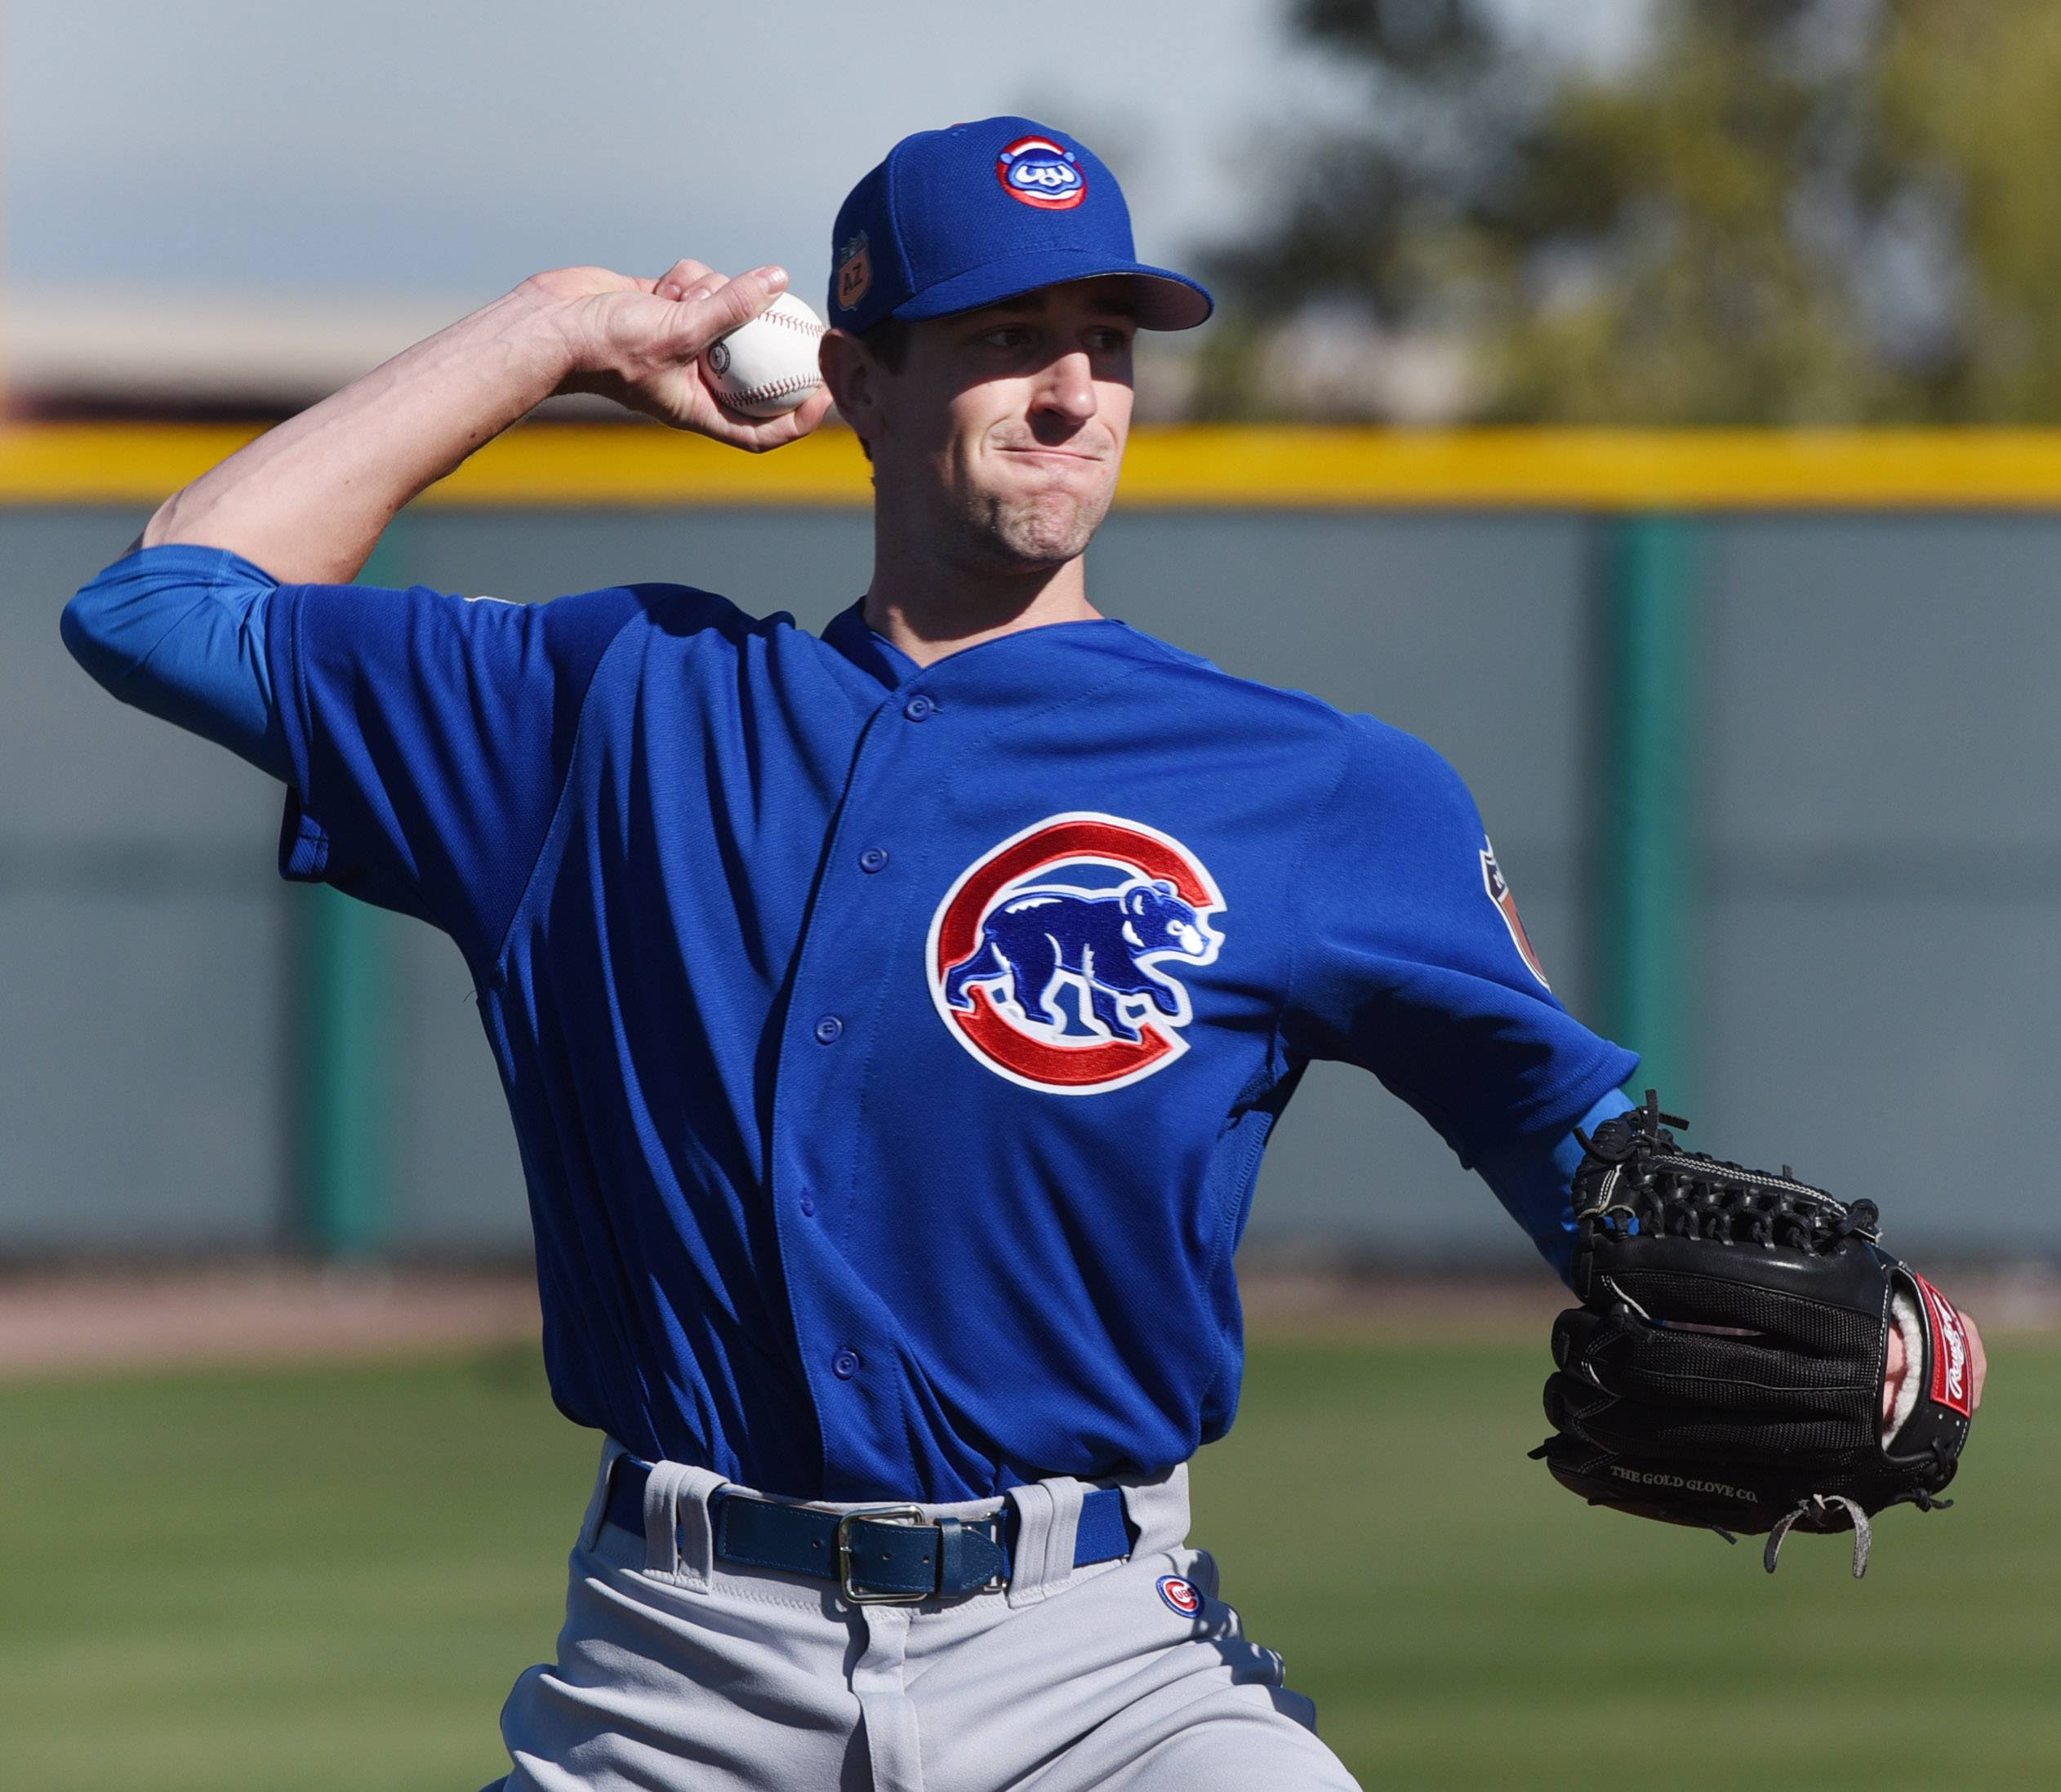 Chicago Cubs starting pitcher Kyle Hendricks, only 27, is tied for first in postseason starts for the Cubs with 7. Mordecai Brown, Jon Lester and Jake Arrieta also have 7 postseason starts for the franchise.